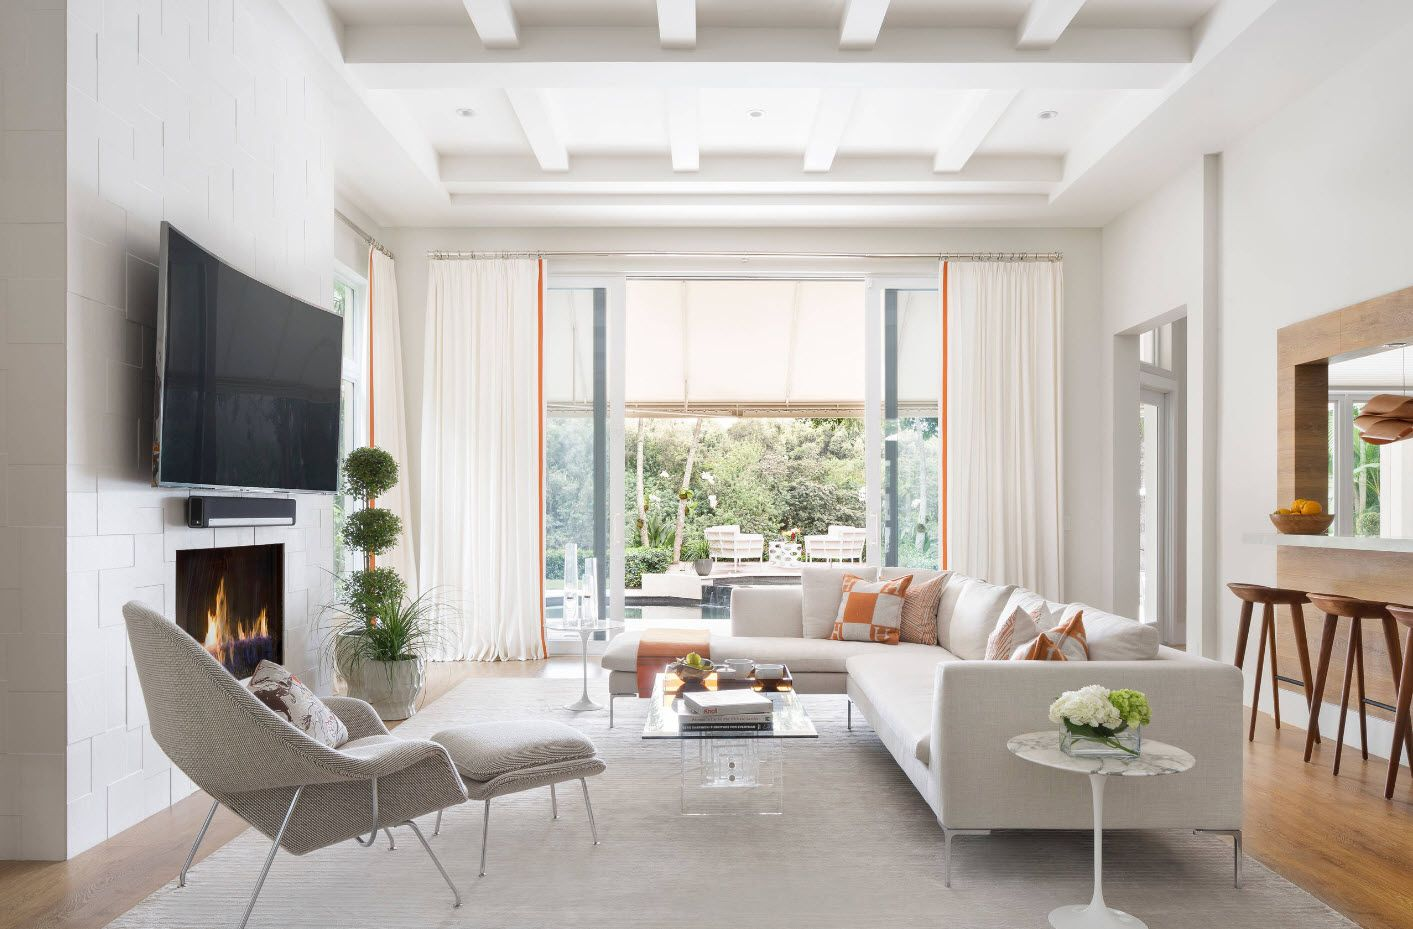 Creating Living Room Interior Inspiration Design Ideas 2017 White Open Beams Of The Ceiling In